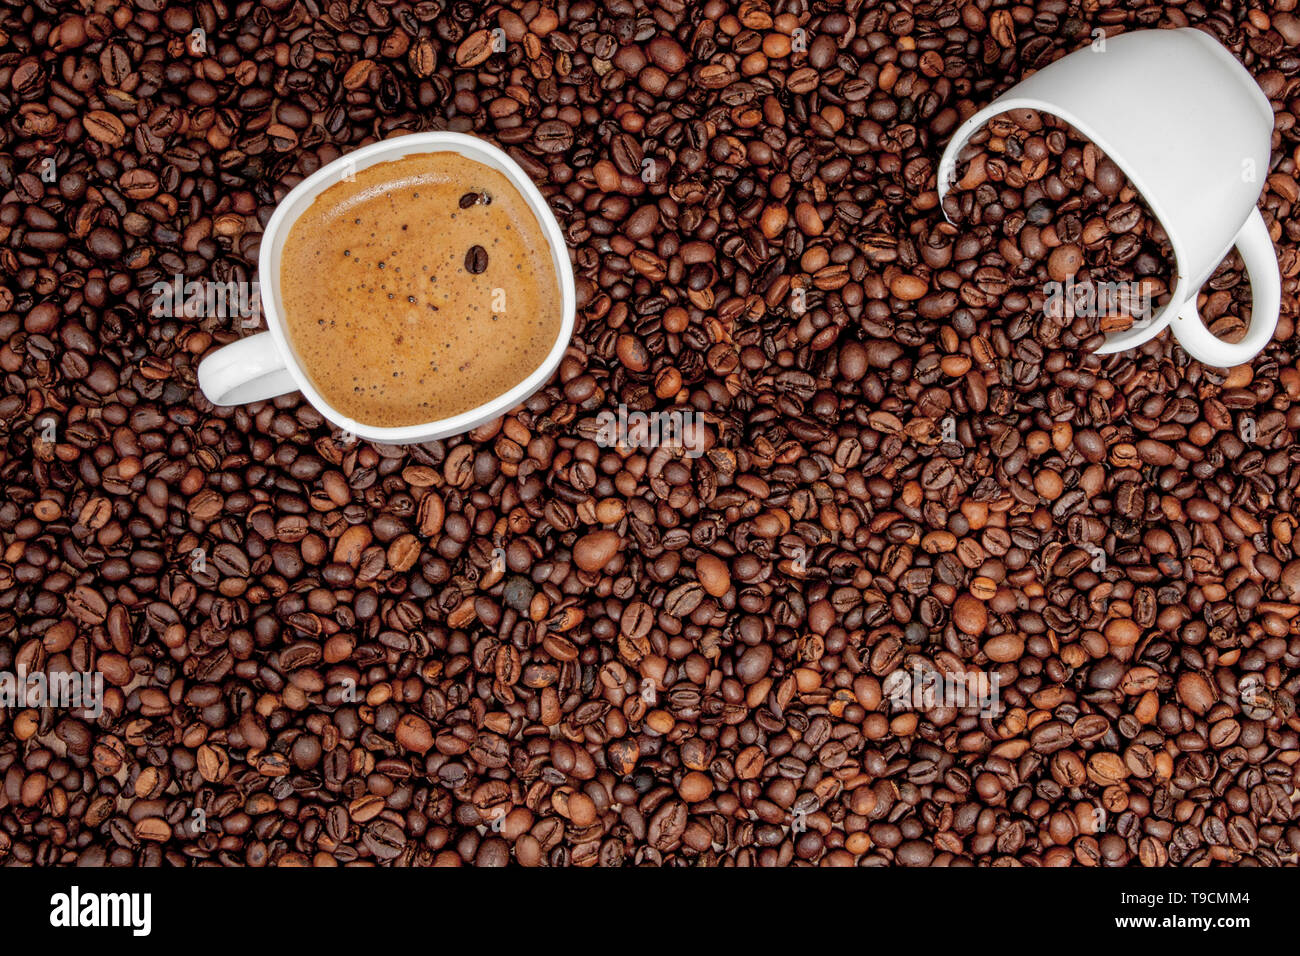 Coffee cup on wooden table. View from top. - Stock Image